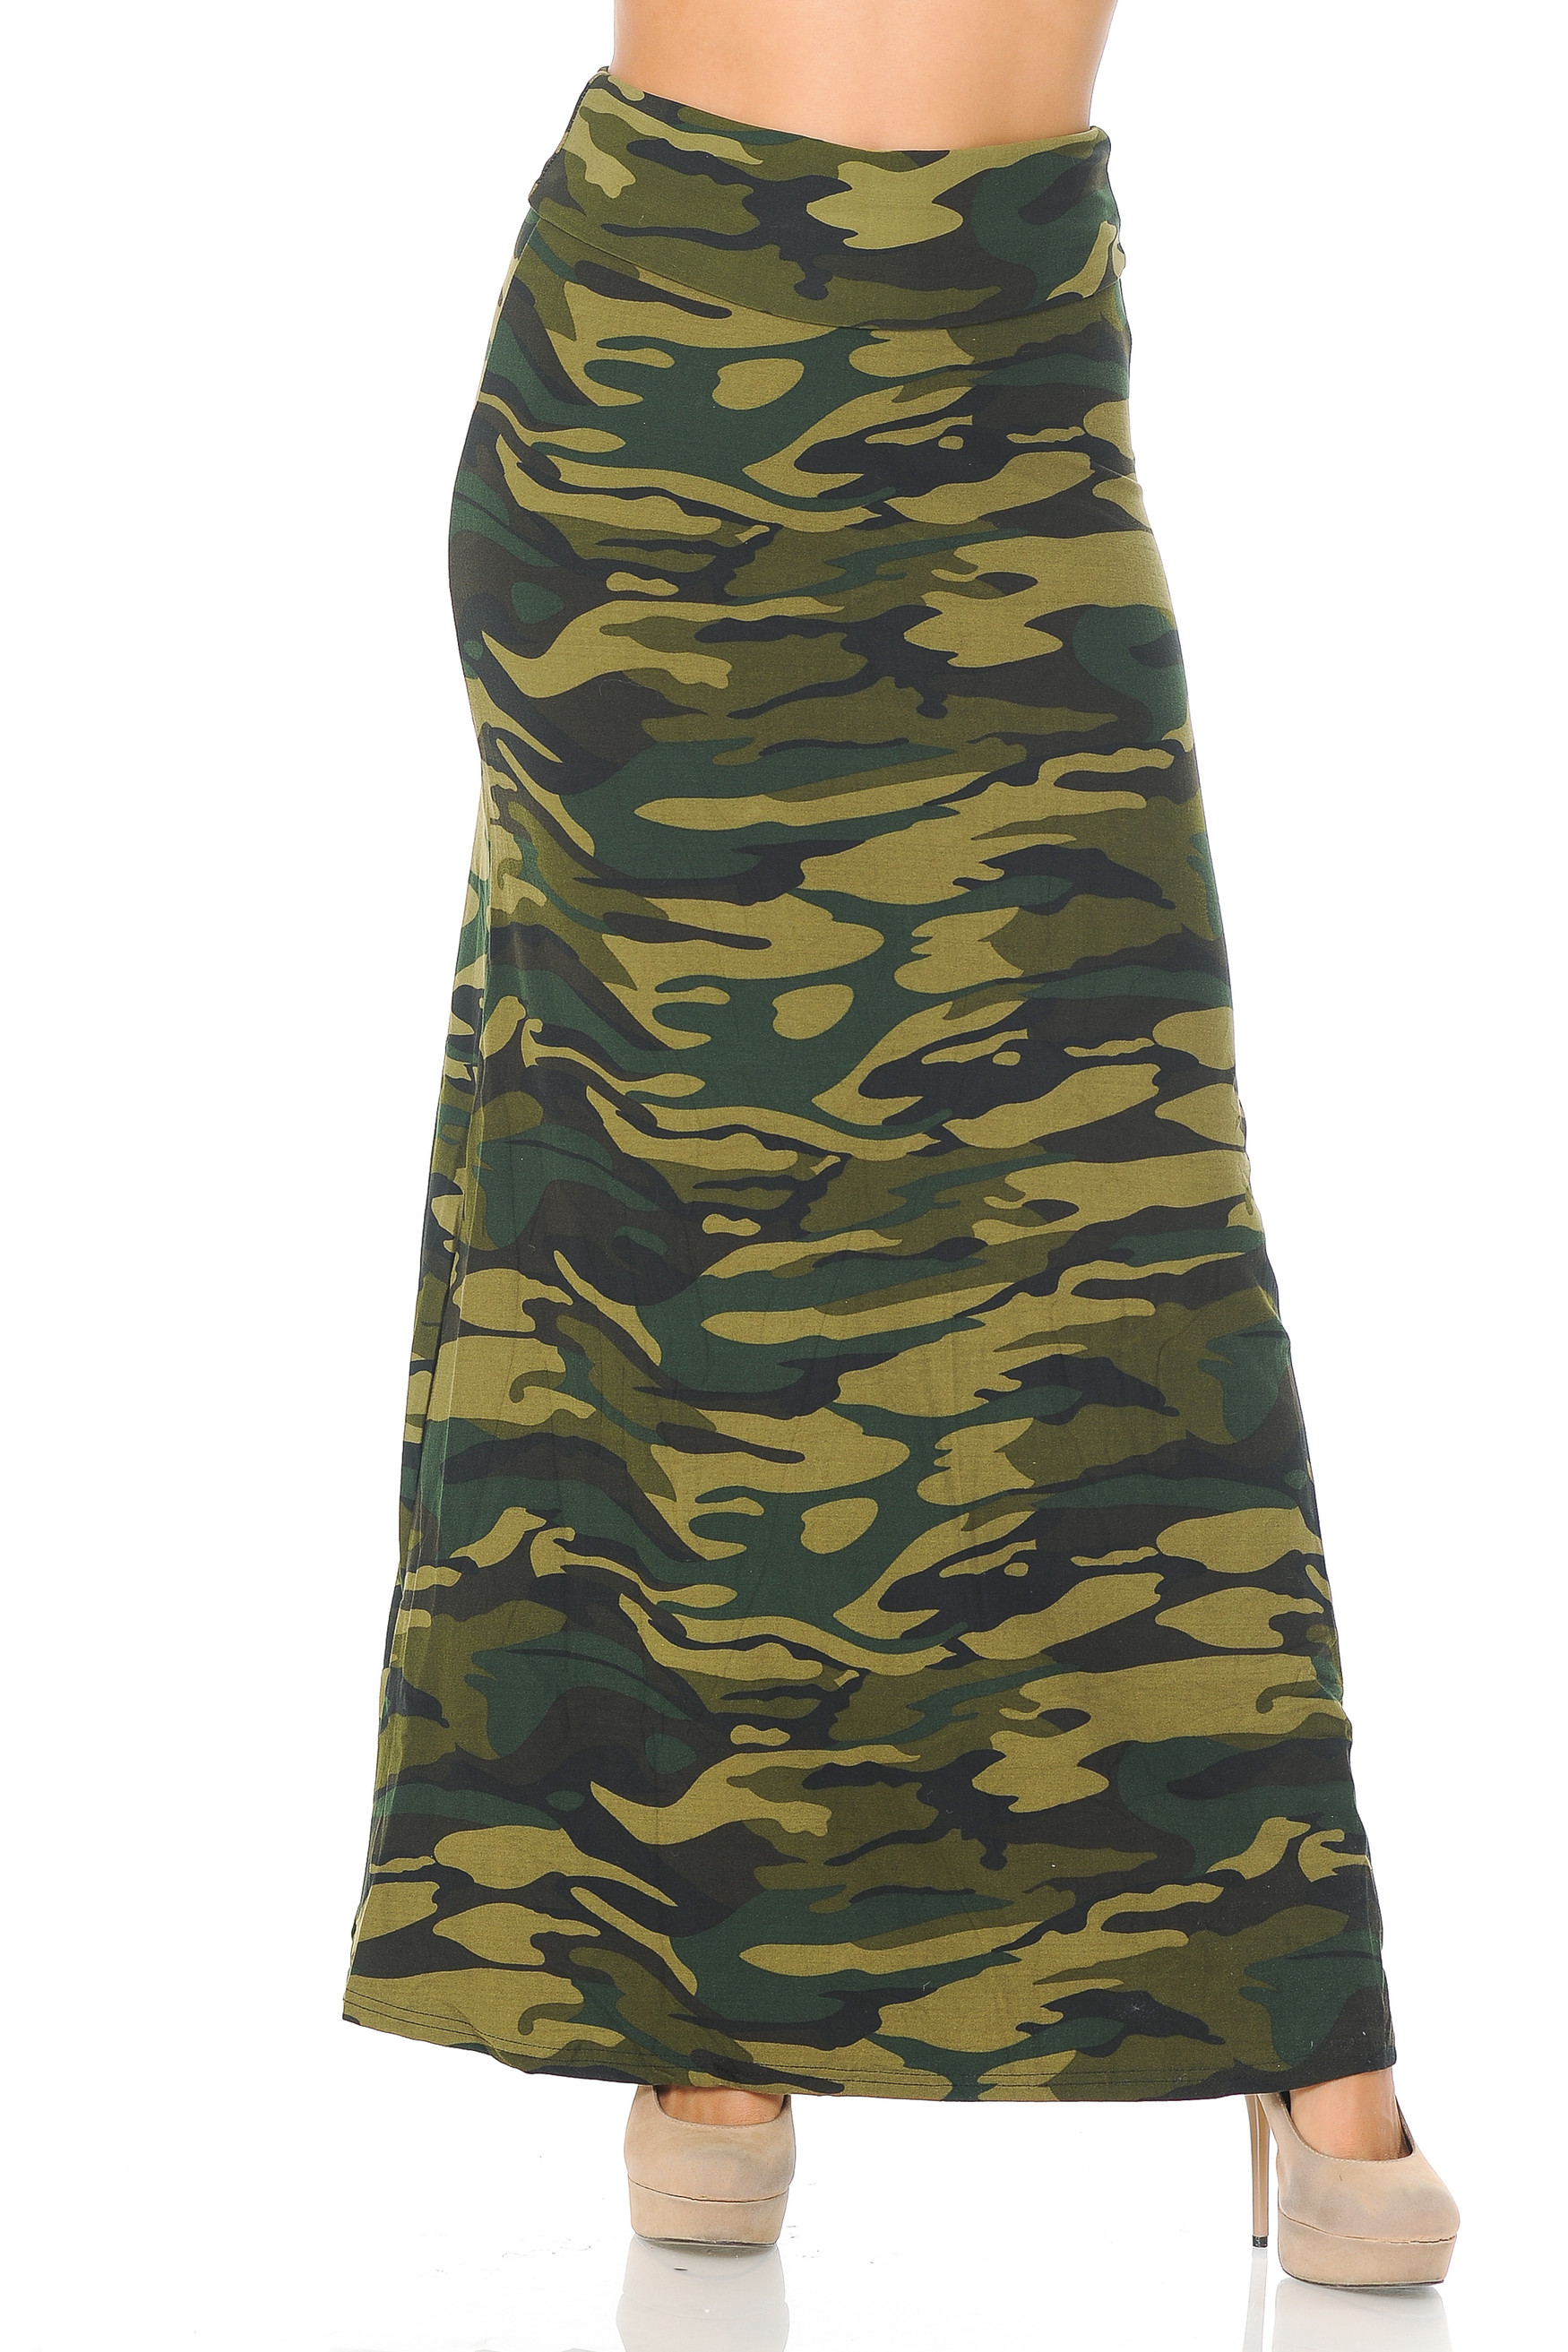 Green Camouflage Buttery Soft Maxi Skirt